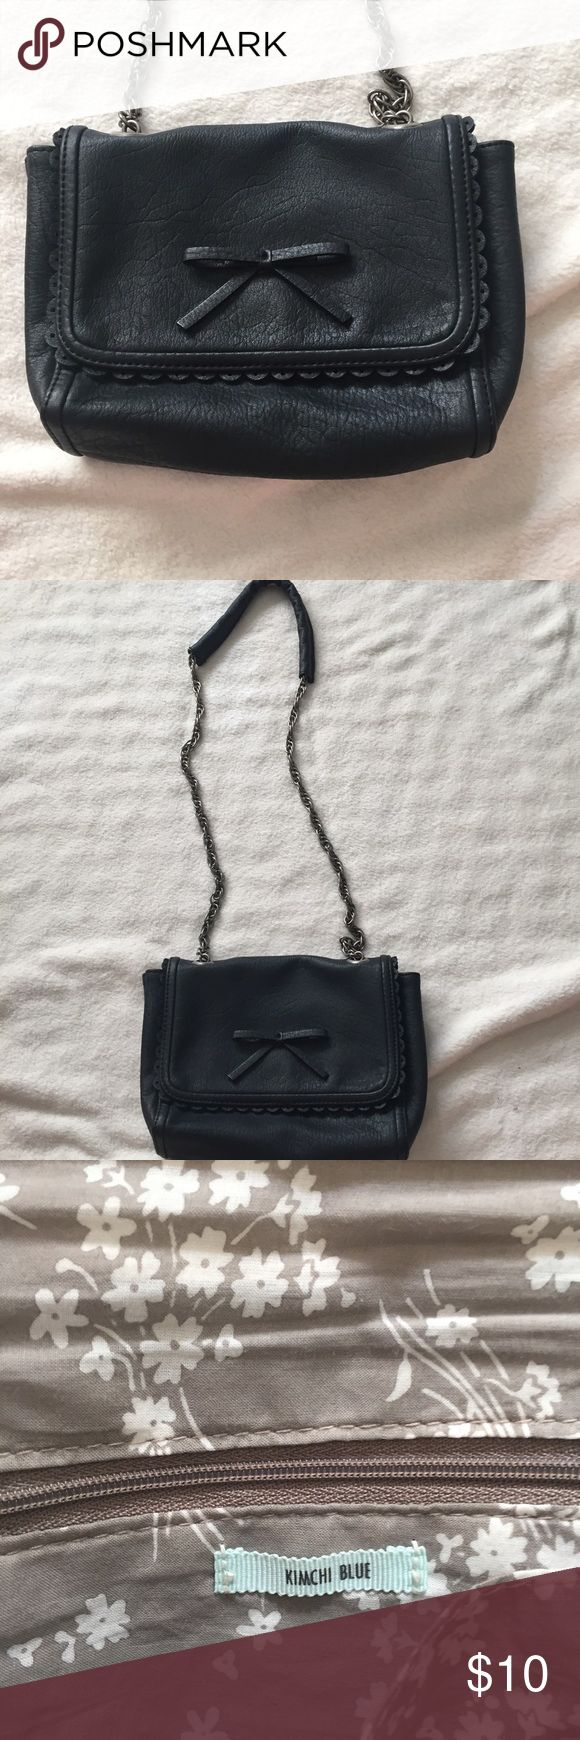 Navy purse from urban outfitters Navy purse with cute scalloped detailing. It's in great condition in exception to a barely noticeable stain by the magnetic closure. It would be a great addition to everyday summer outfits. Price negotiable, bundle to save! Urban Outfitters Bags